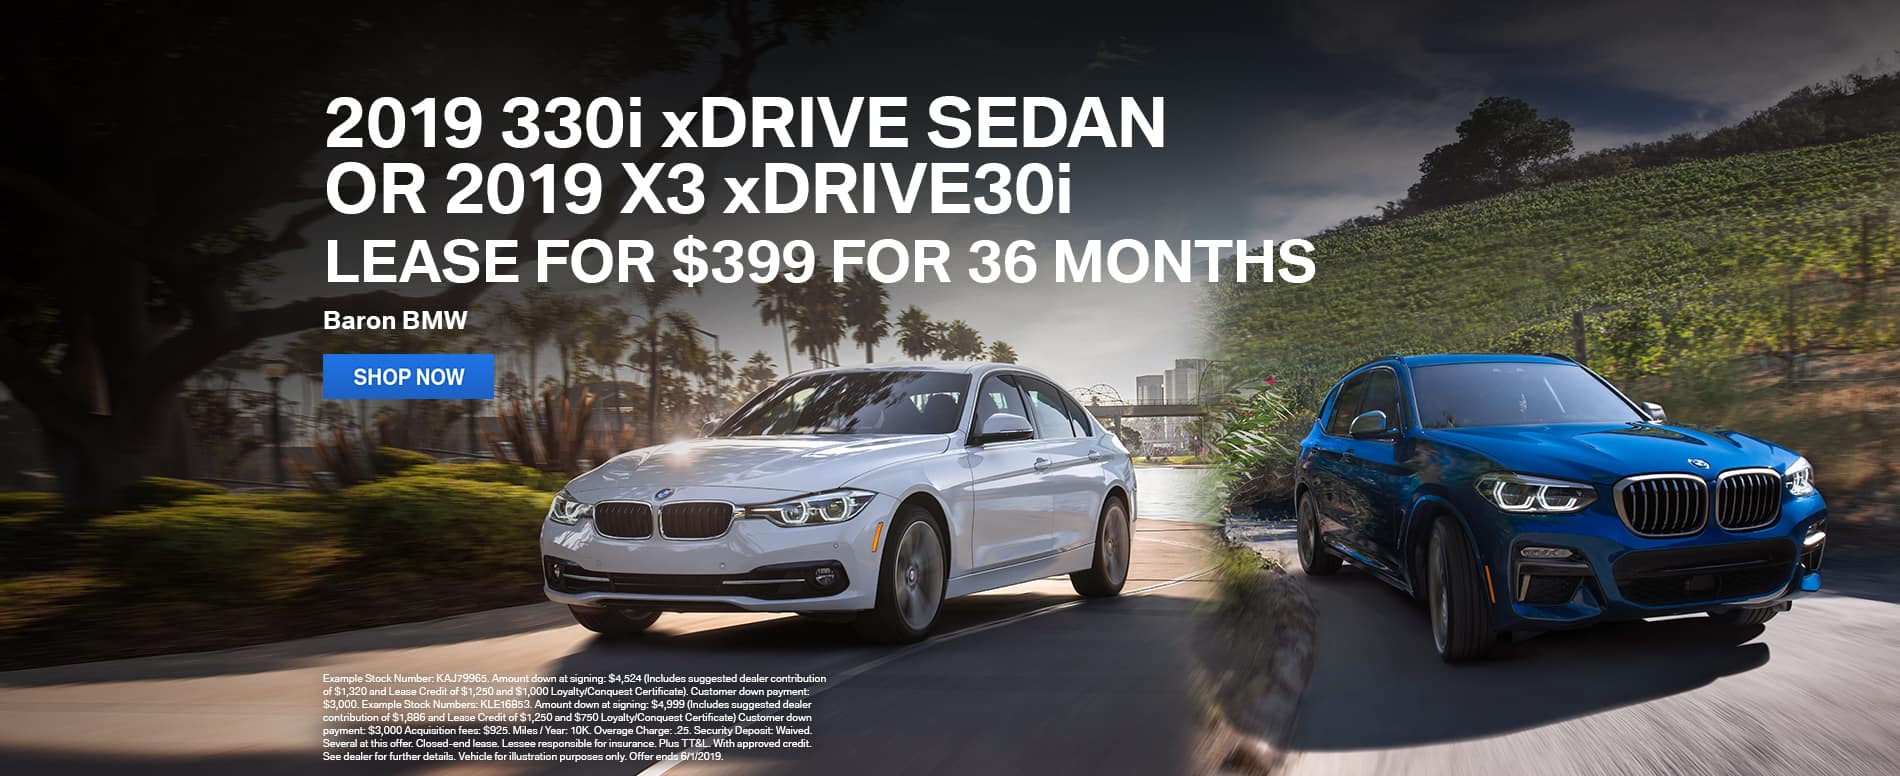 lease-2019-330i-xdrive-or-2019-3-xdrive30i-for-399-per-month-baron